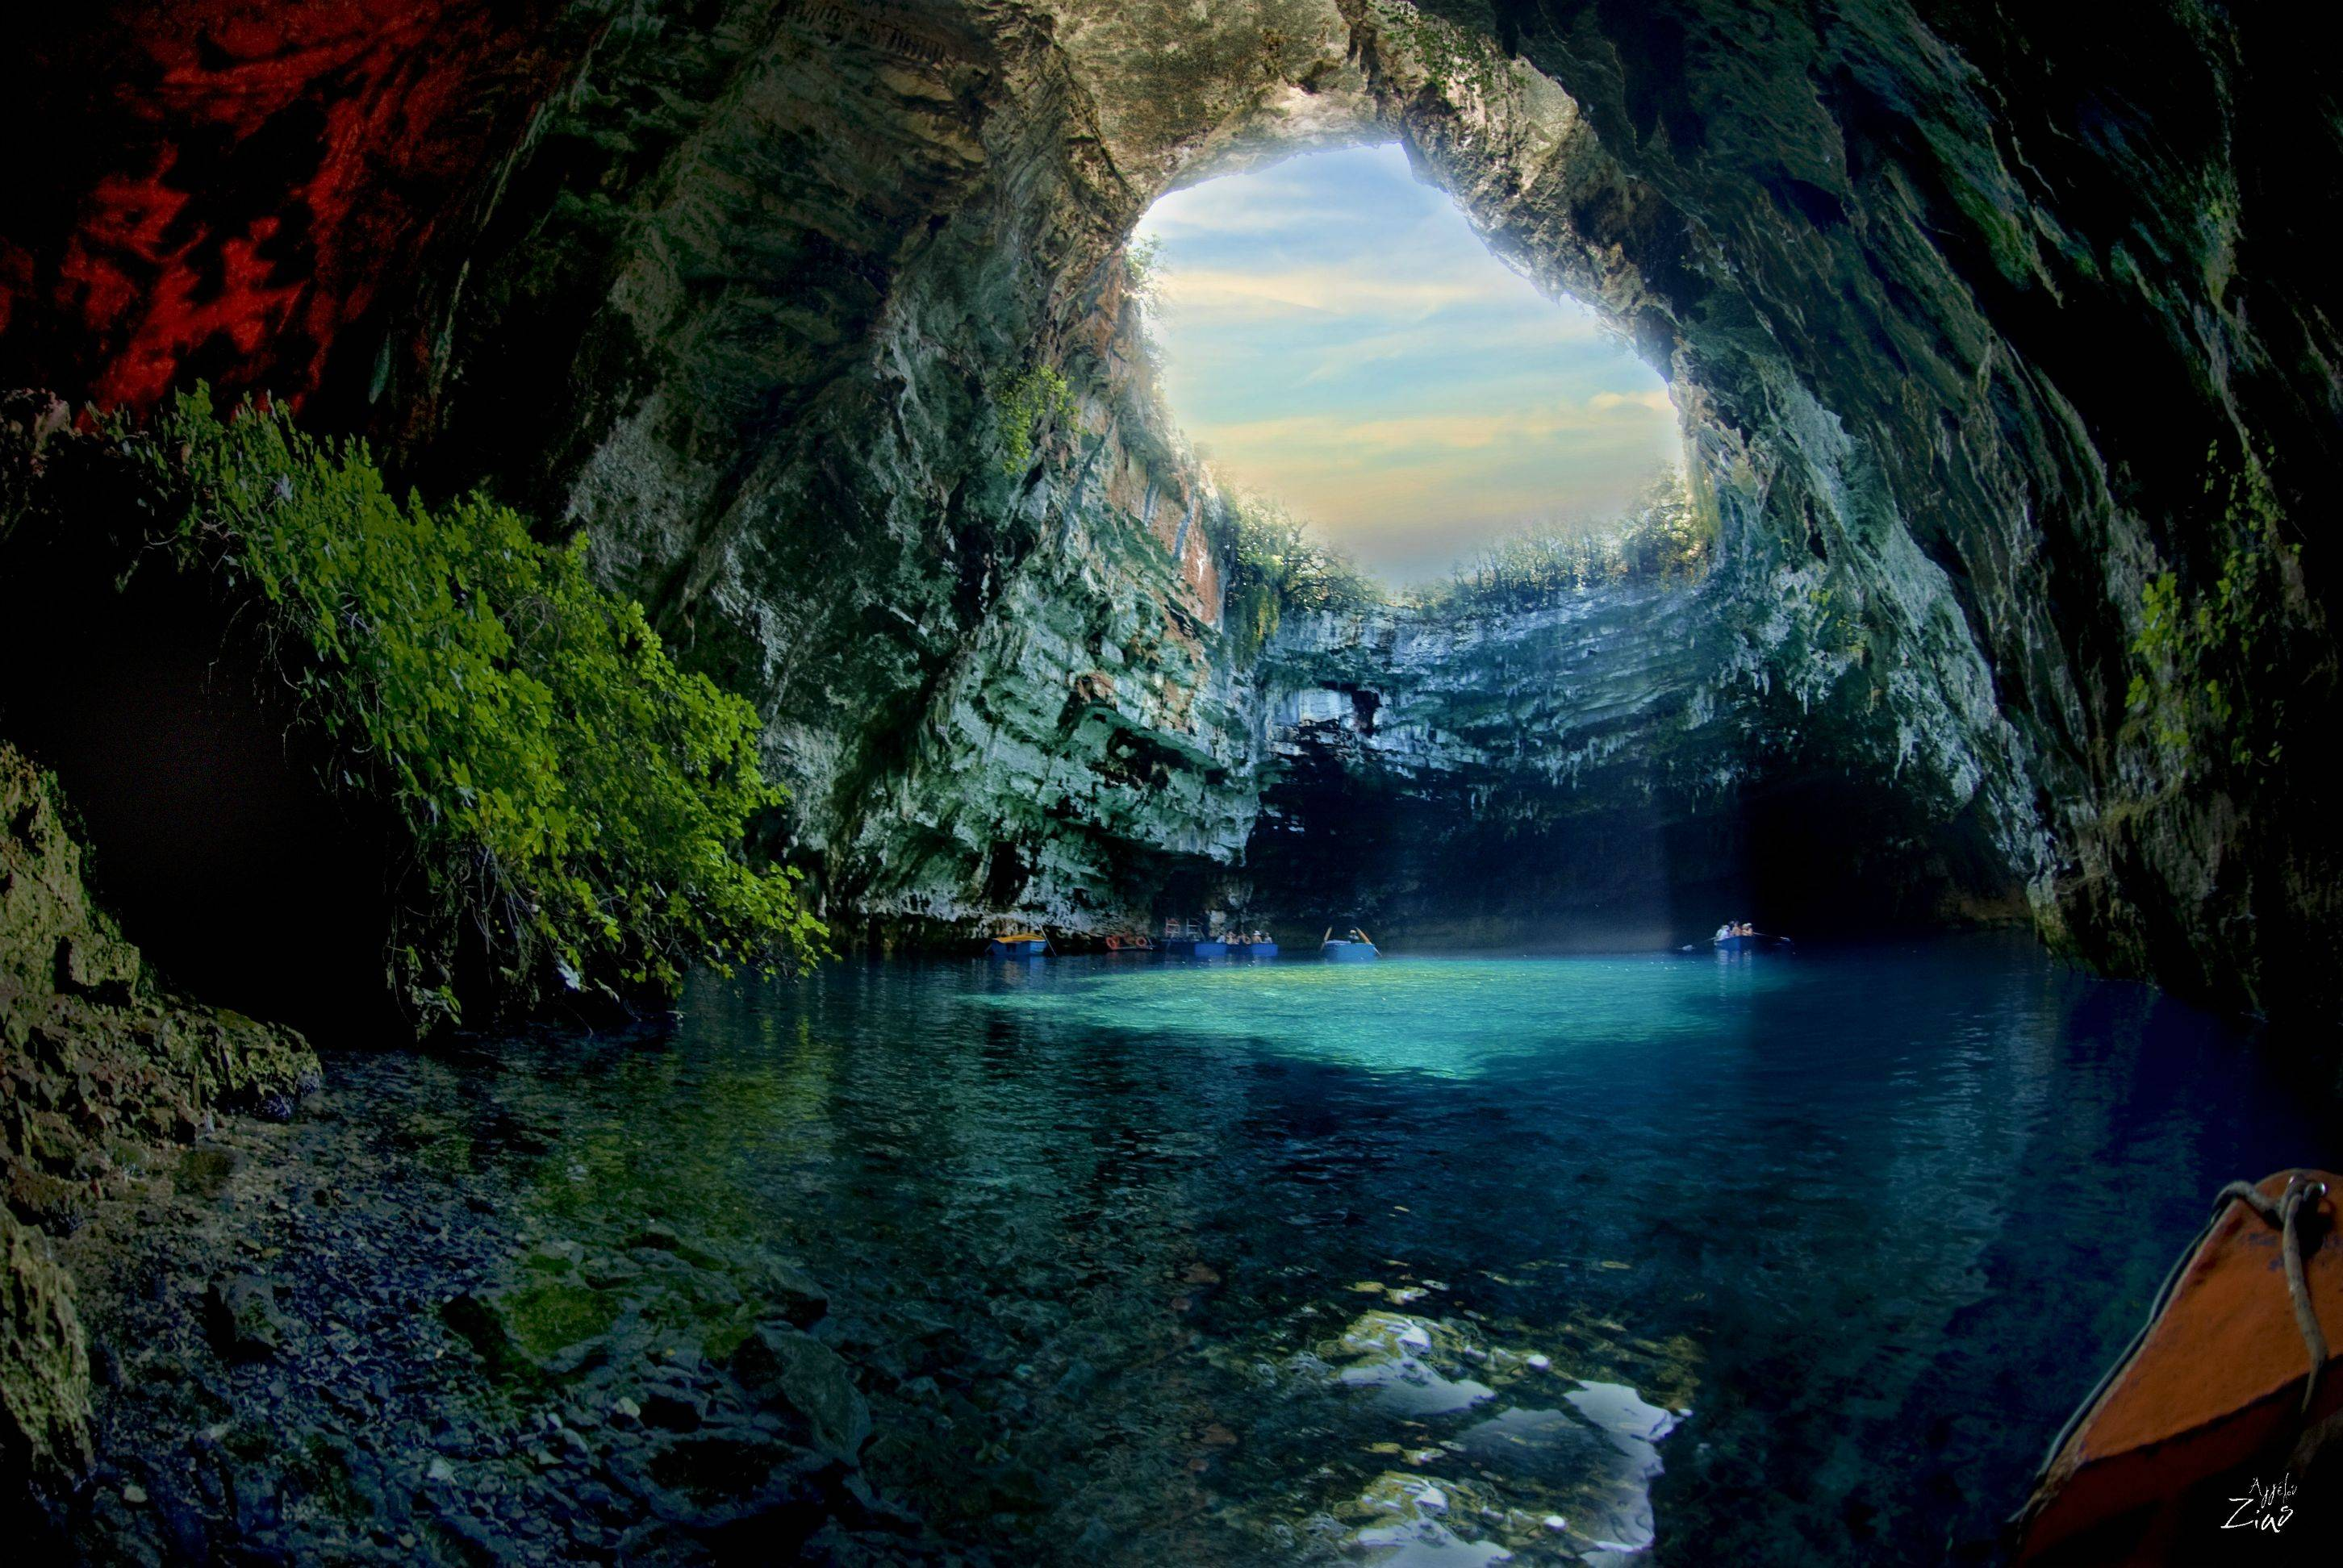 Melissani Cave located in Kefalonia Island, Greece